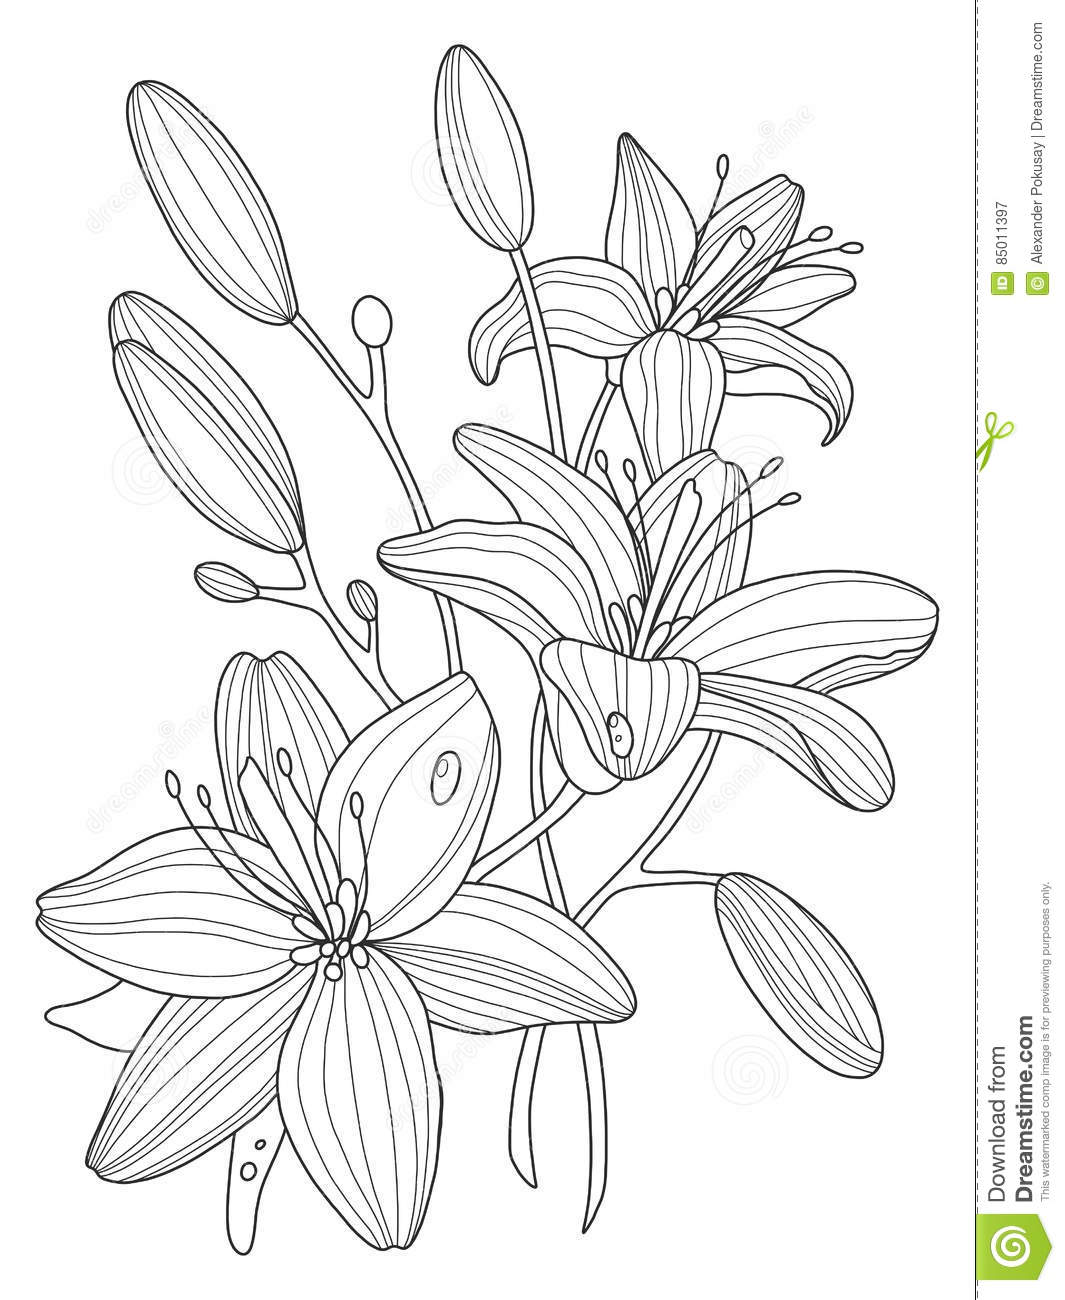 Lily flowers coloring book vector illustration stock vector download lily flowers coloring book vector illustration stock vector illustration of mandala ornate izmirmasajfo